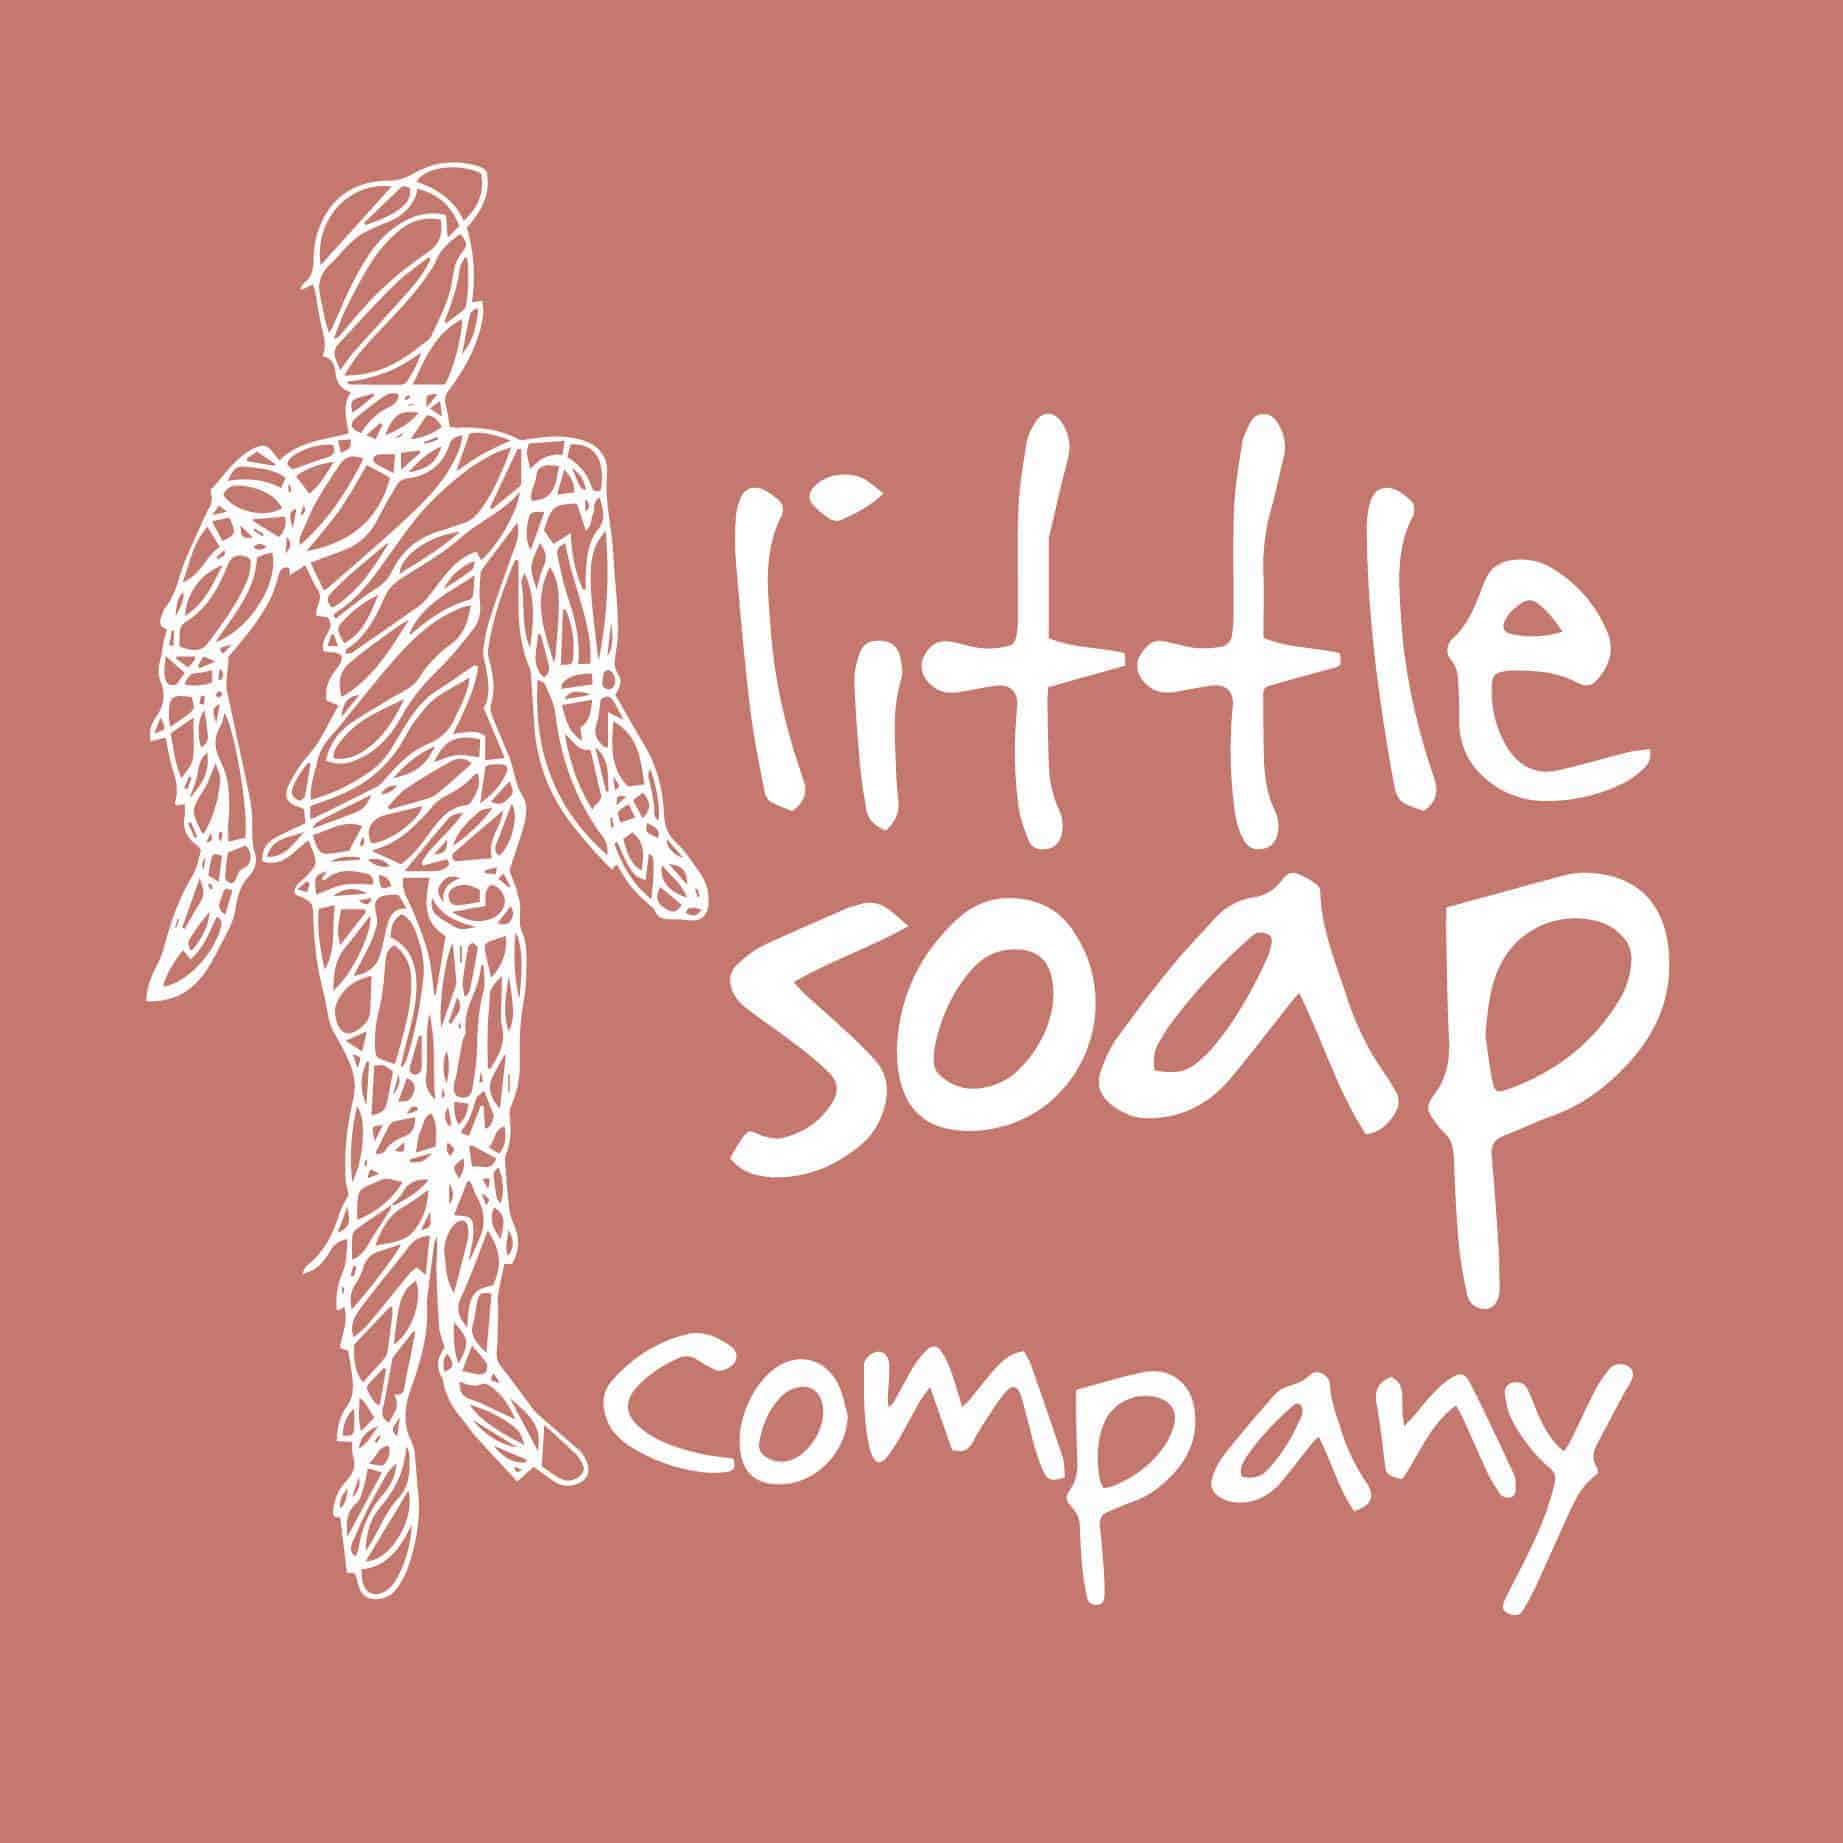 The Little Soap Company - Organic, 100% All Natural, Cruelty